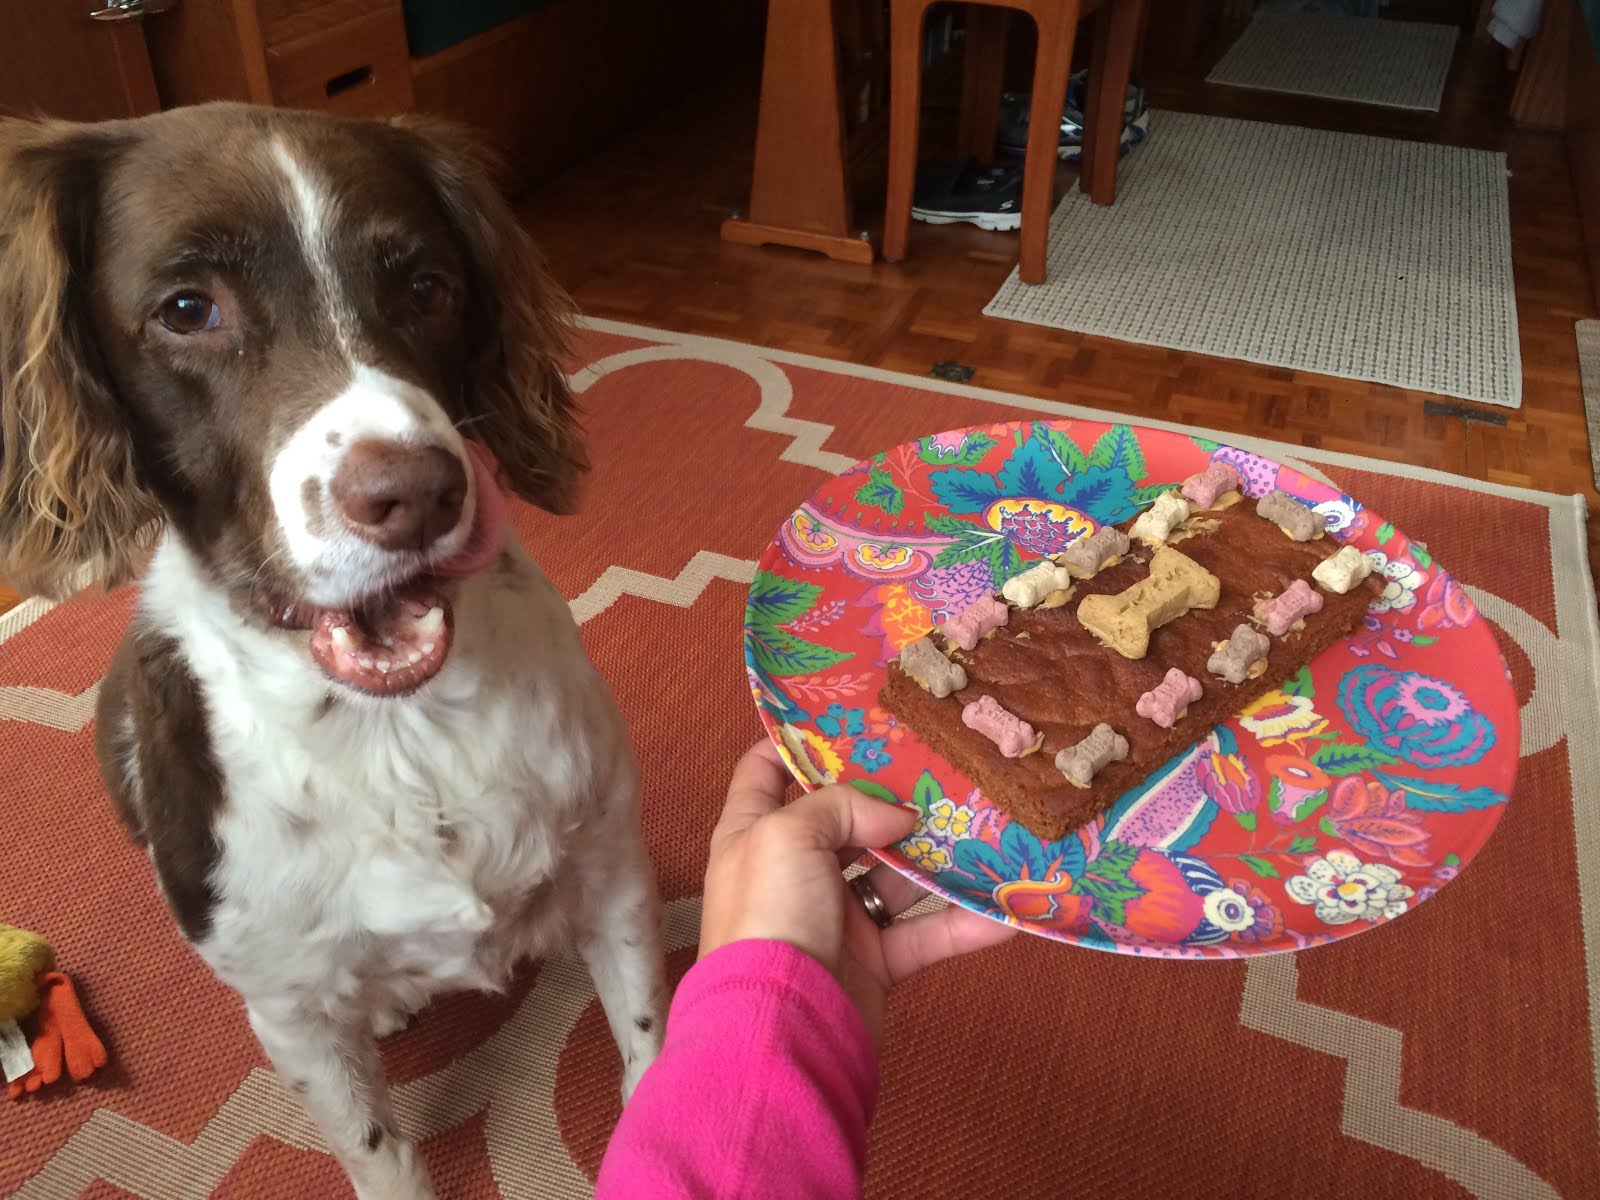 Crocket and his birthday cake